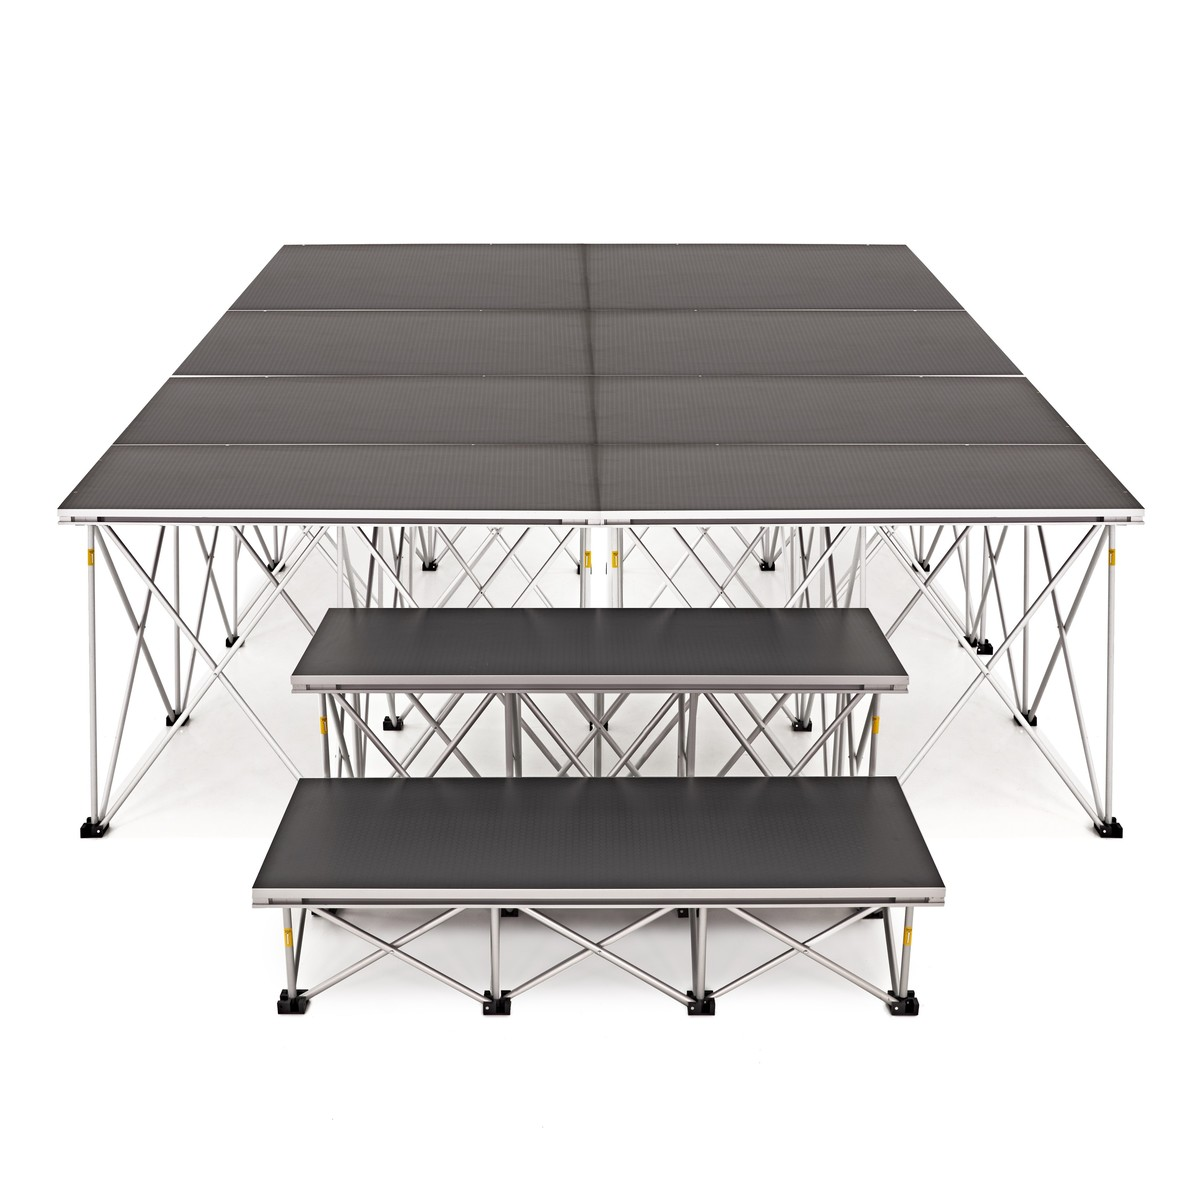 2m x 4m Portable Stage Kit by Gear4music 60cm